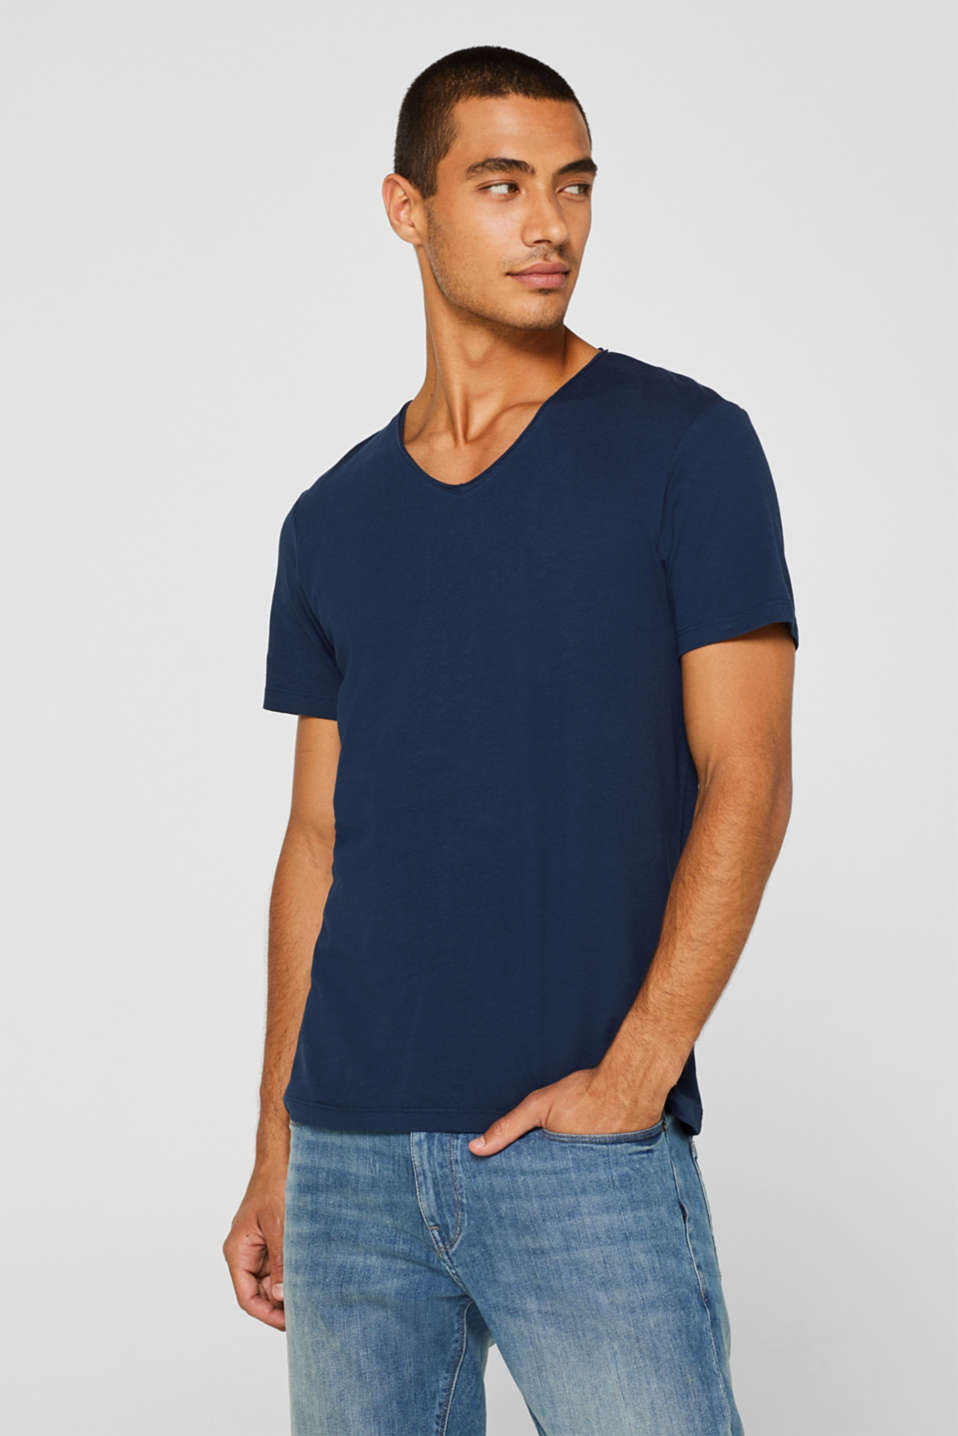 edc - Basic jersey T-shirt, 100% cotton